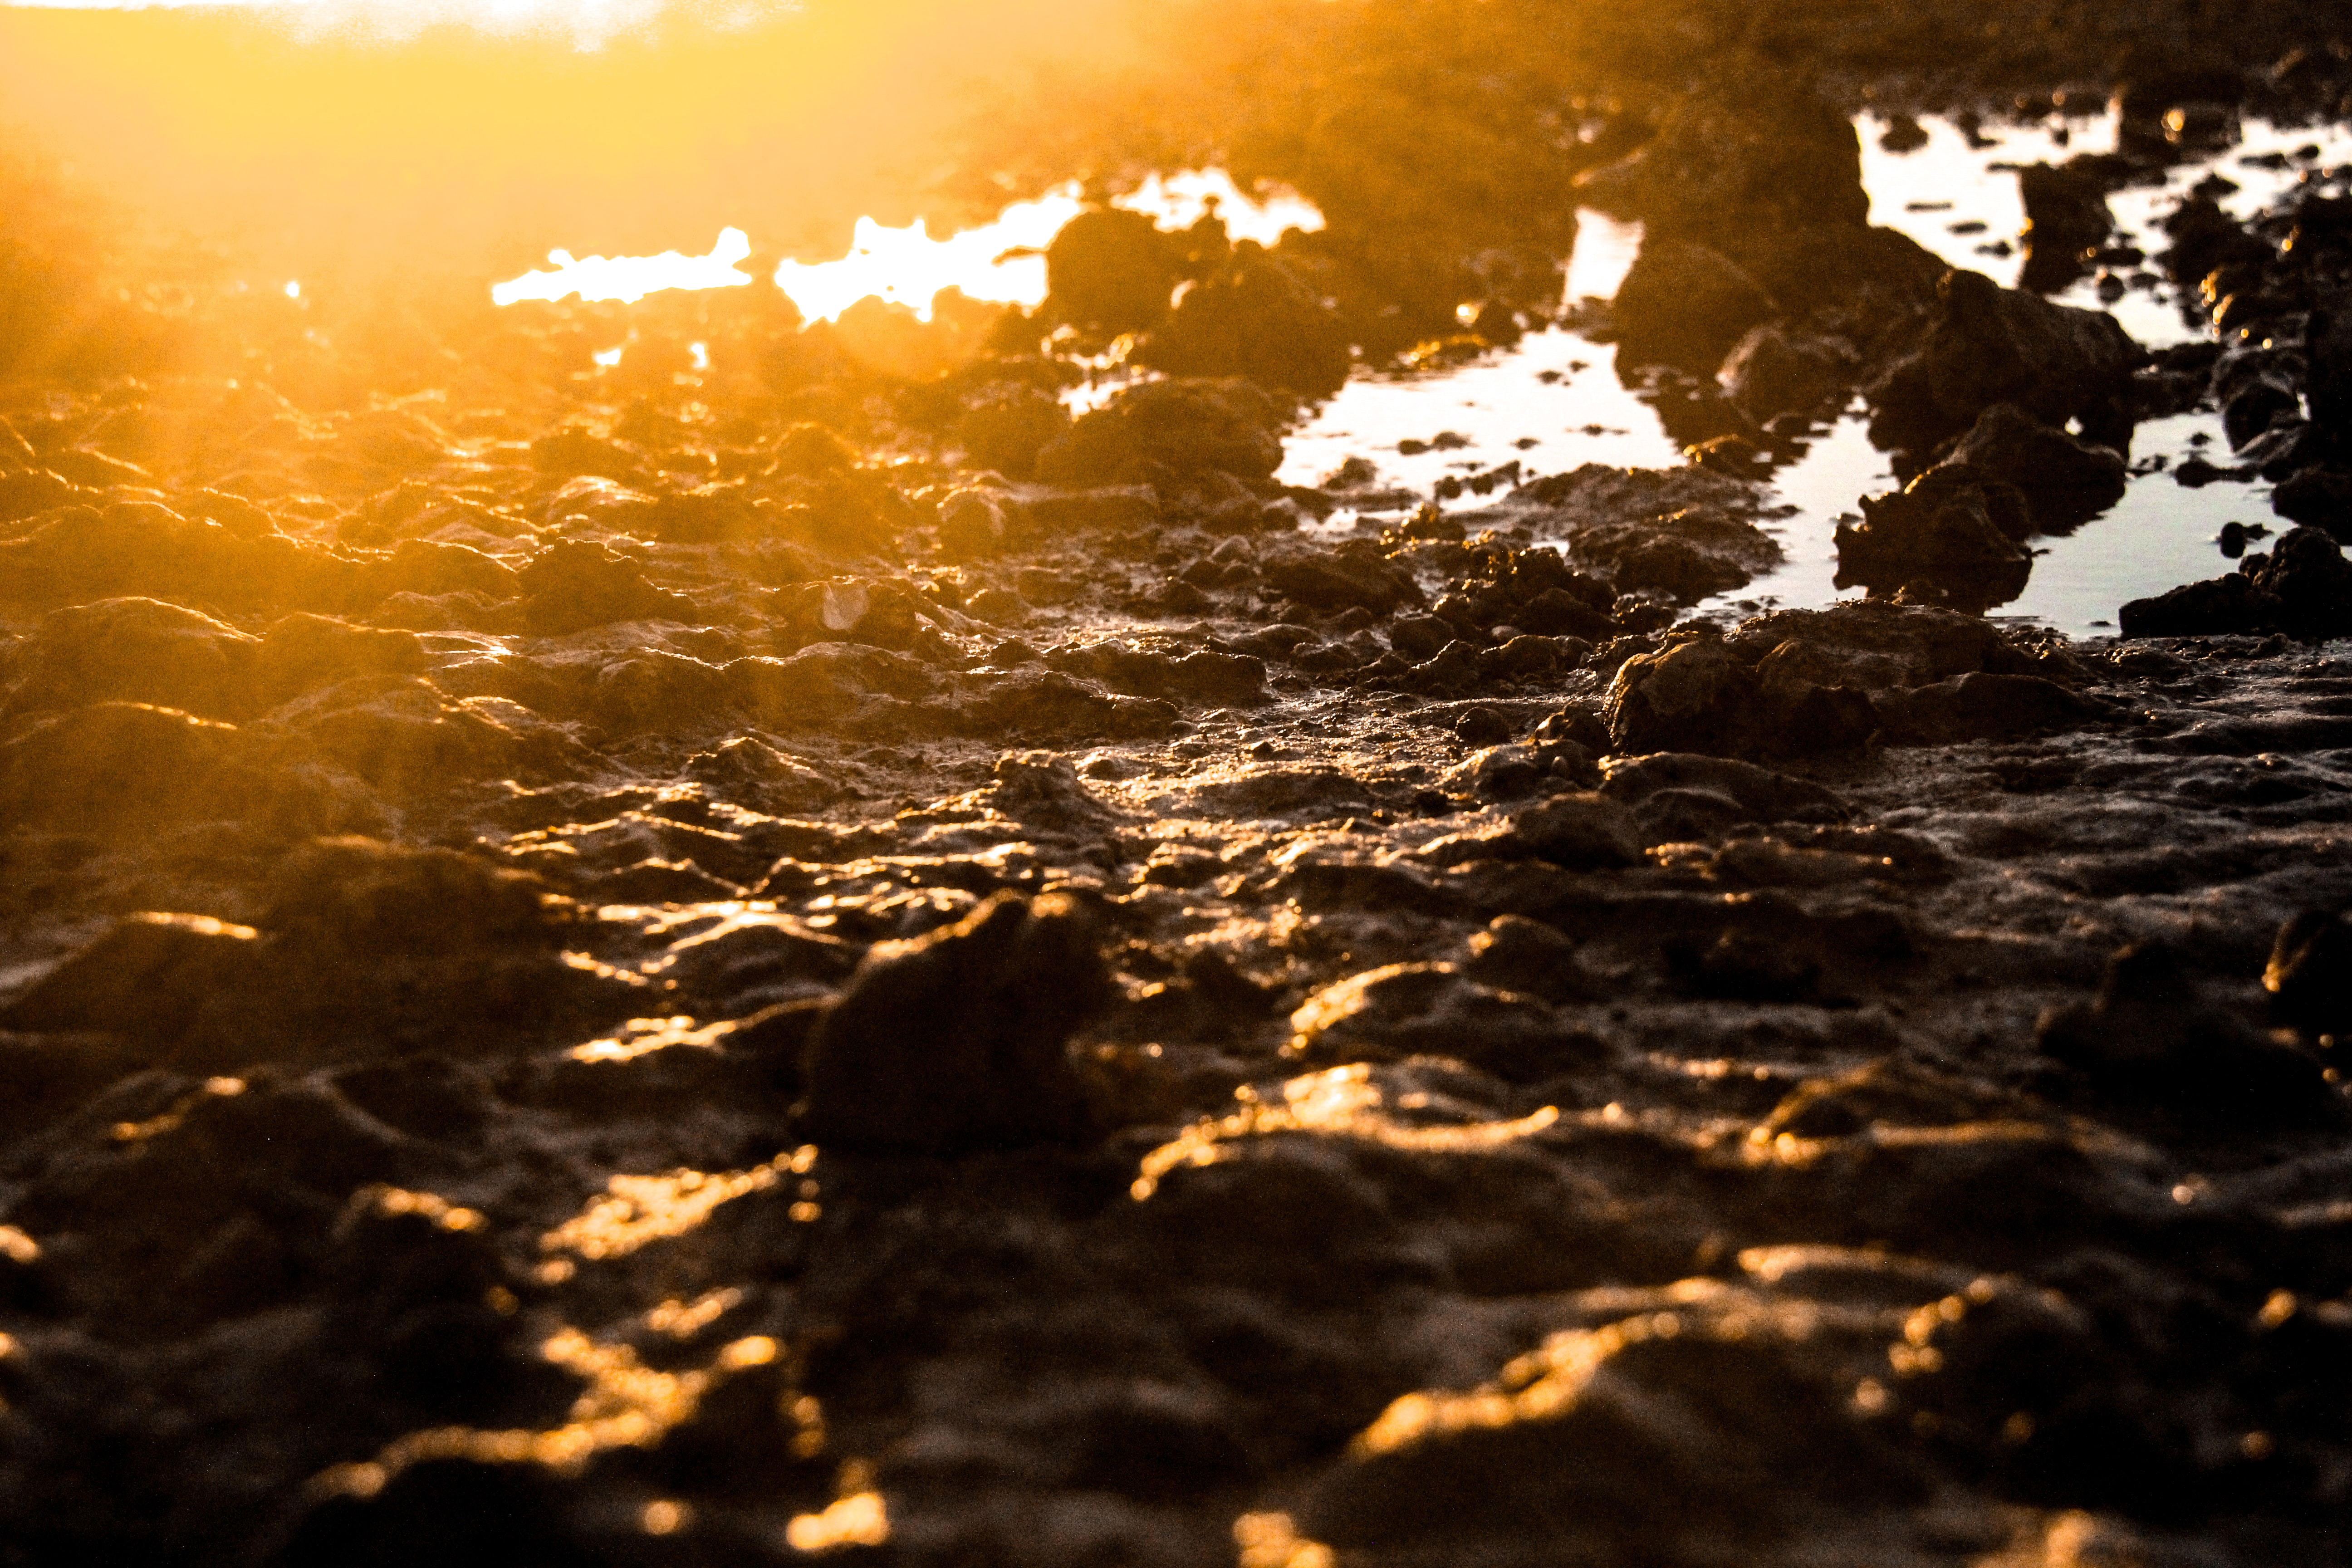 silhouette photo of rocks on ground